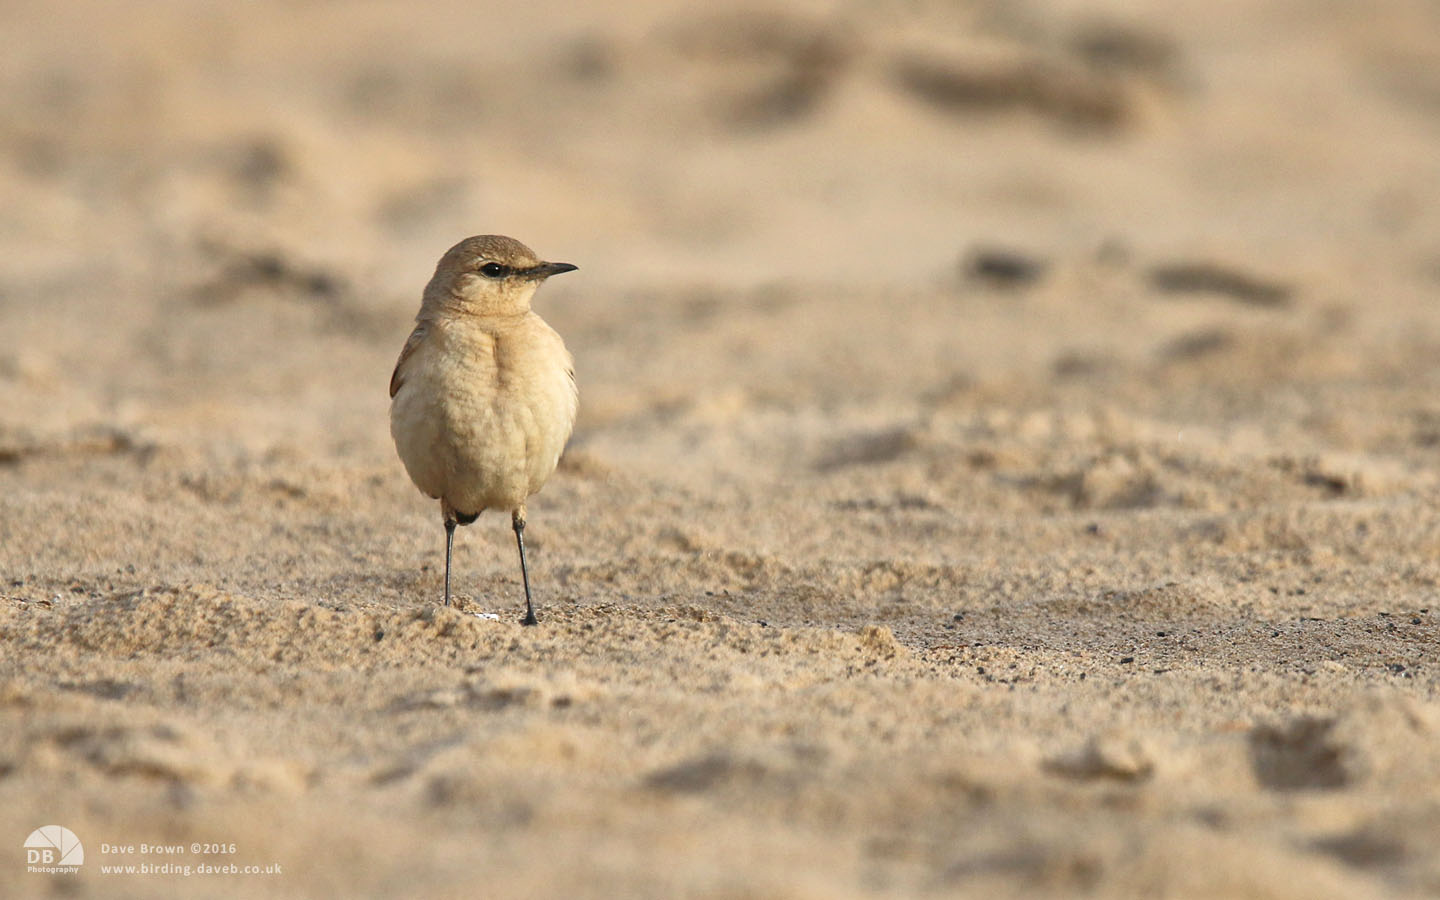 Isabelline Wheatear at Seaton Snook, 24th November 2014